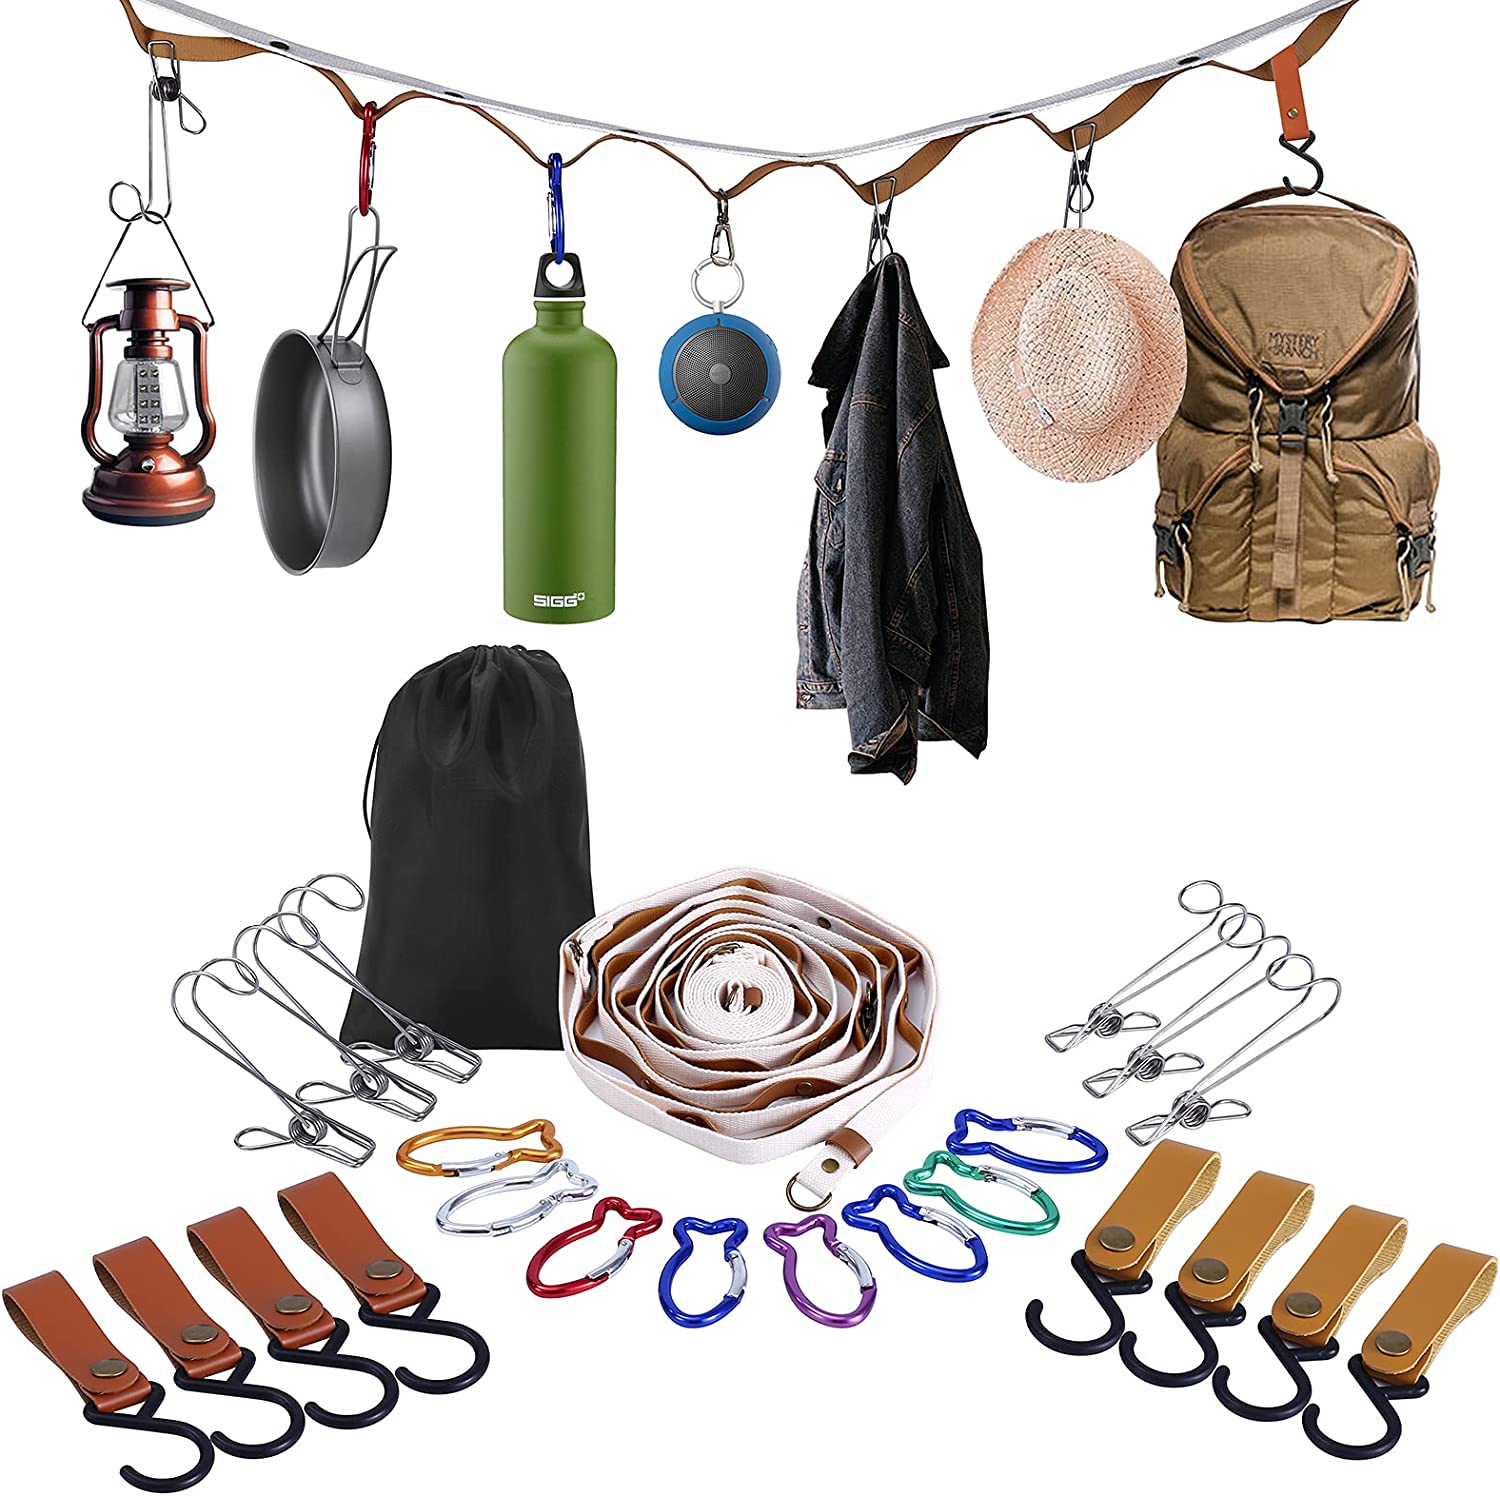 Campsite Storage Strap Camping Accessories, Outdoor Equipment Ten Lanyard Travel Clothesline Camping Essentials with 16 Buckle & 6 Clothespins for Camper Family RV Trailer Travel Tent Hanging Gear